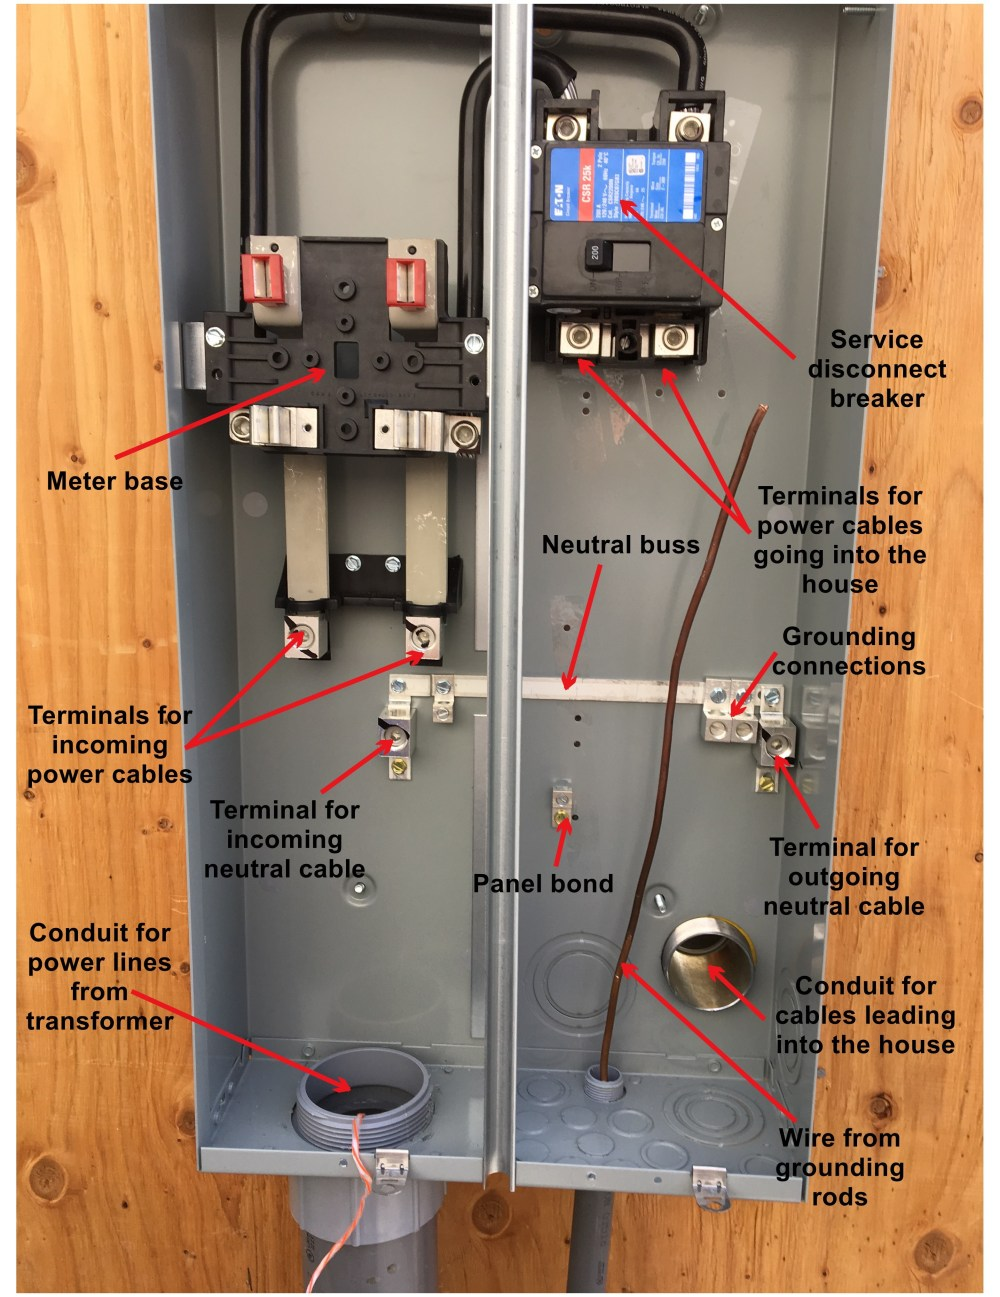 medium resolution of 200 amp disconnect wiring diagram download wiring diagram for 200 amp breaker box save 200